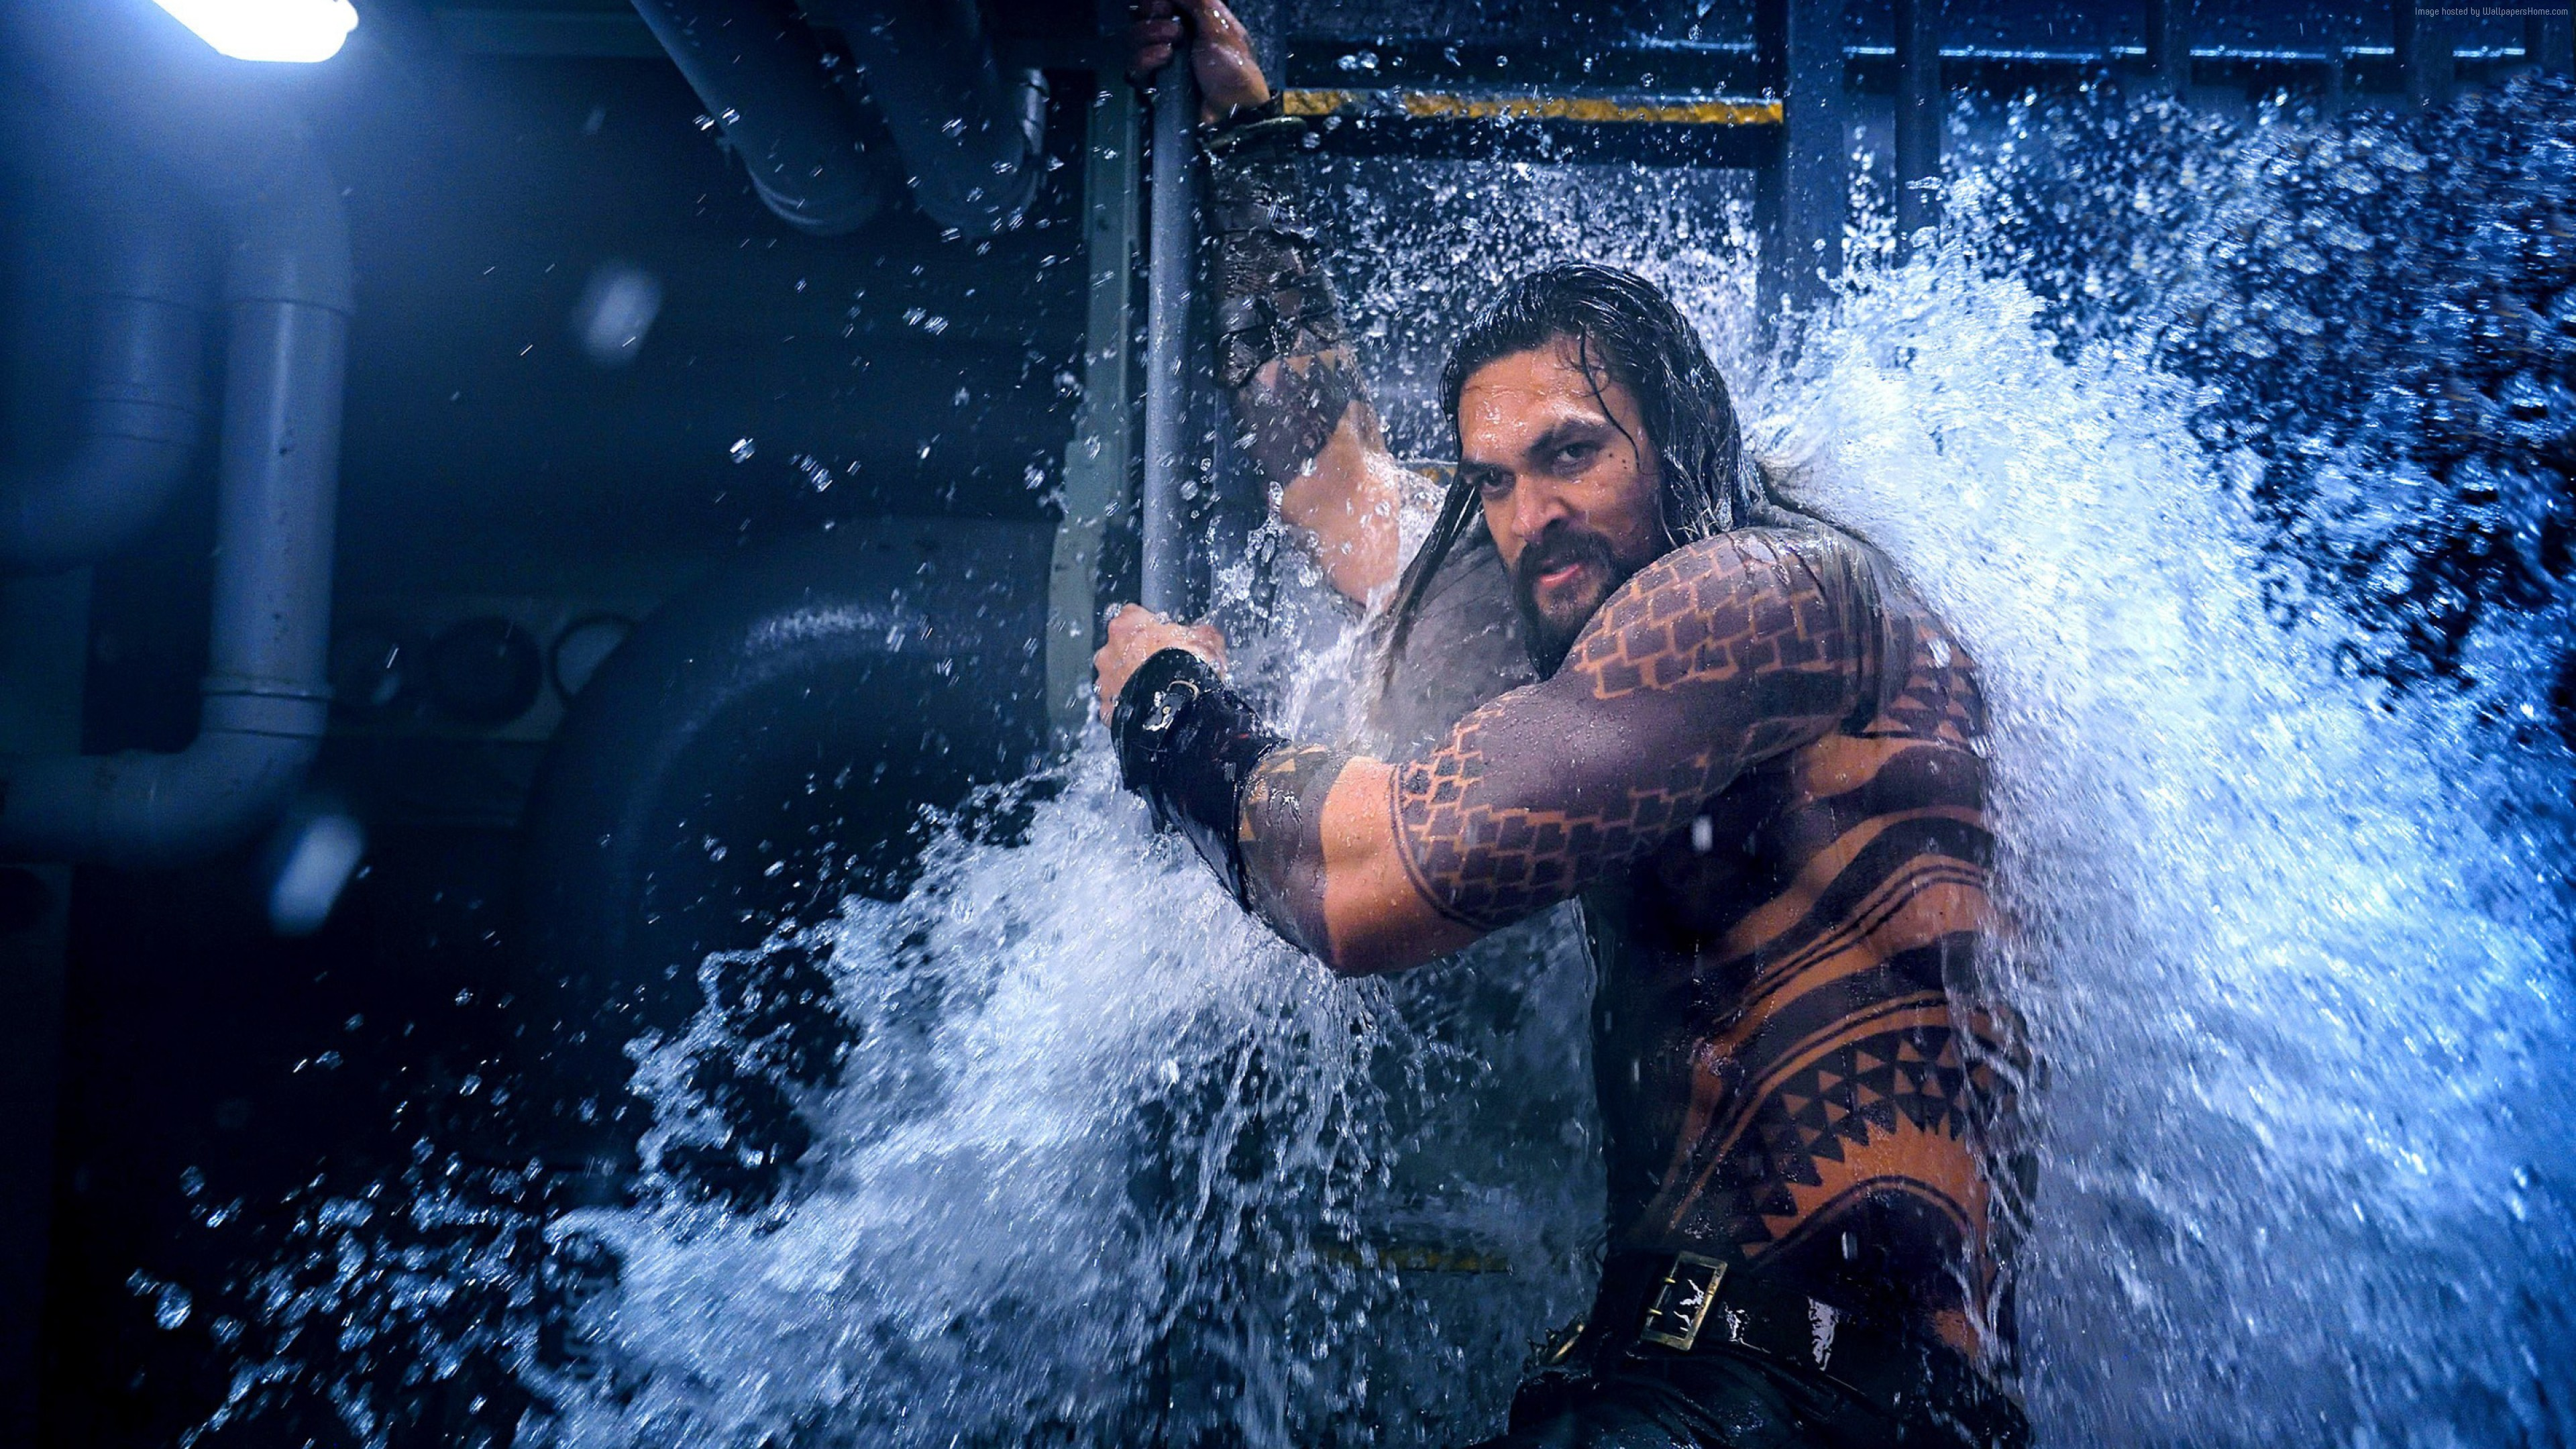 Wallpaper Aquaman, Jason Momoa, Movies